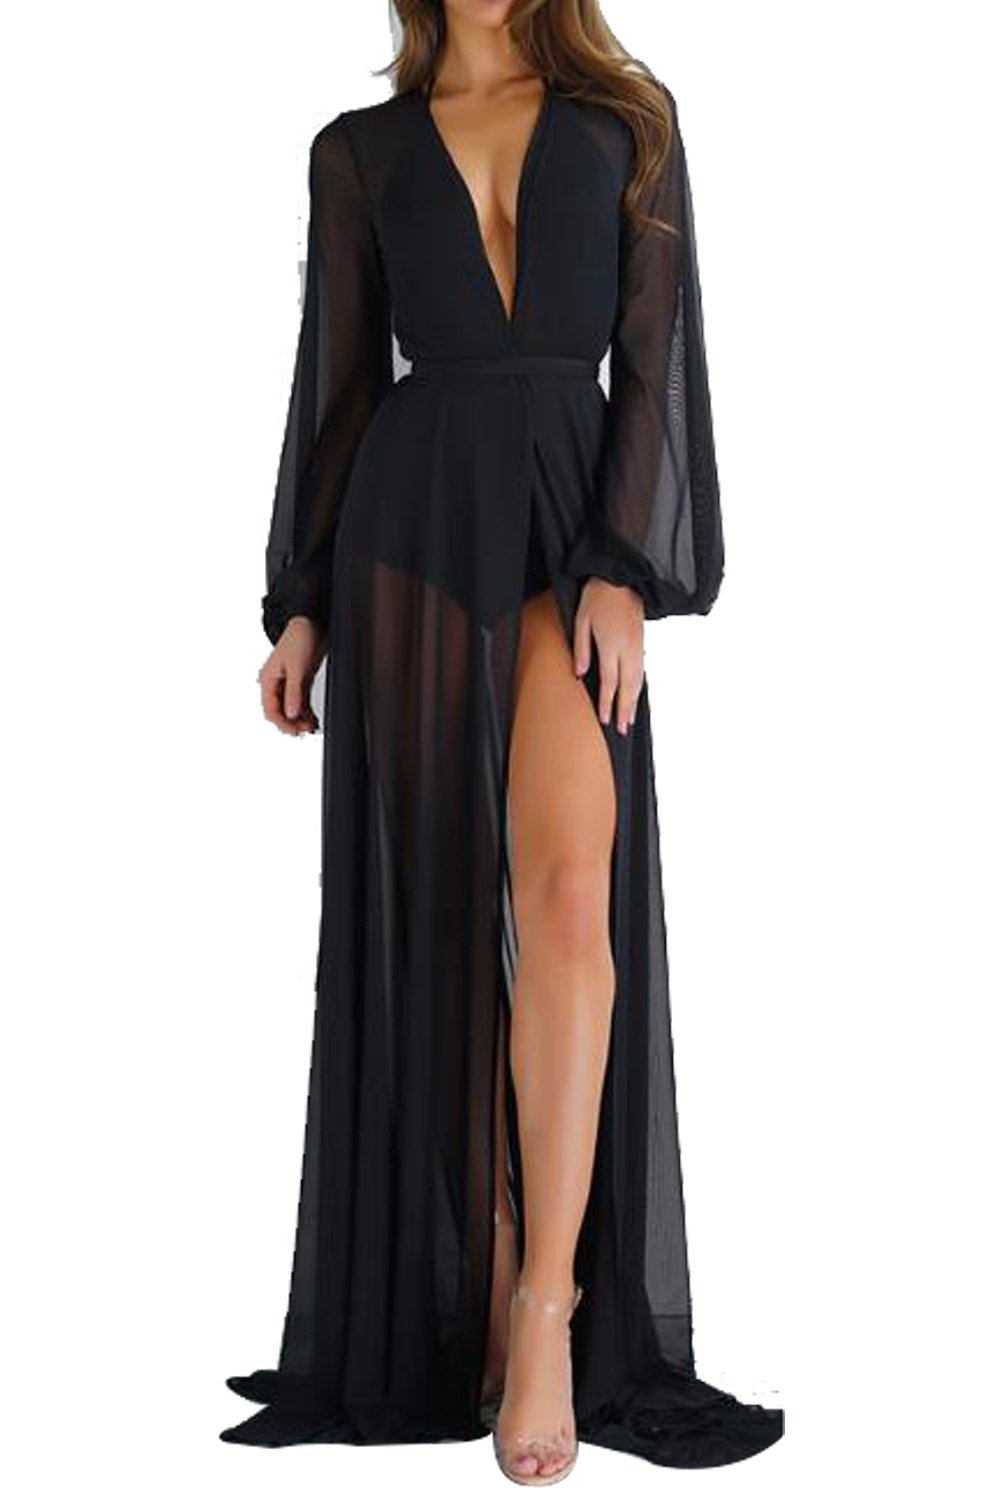 Women's Sexy Sheer Mesh Belted Solid Short/Long Sleeve Cover up Kimono Cardigan Size L (Black)